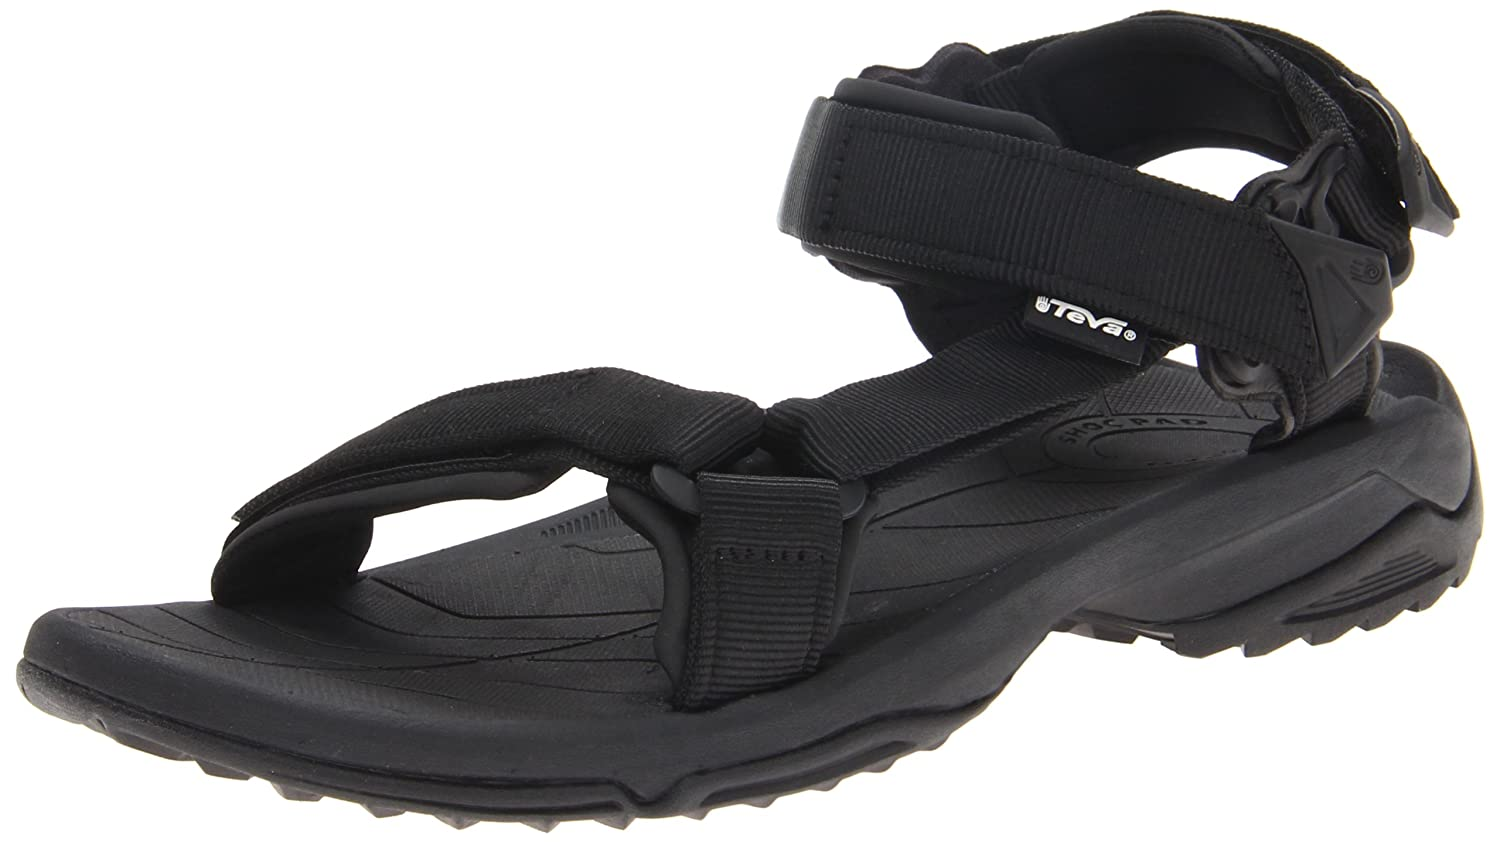 bae62b894bb2 Teva Men s Terra Fi Lite Sports and Outdoor Hiking Sandal  Amazon.co.uk   Shoes   Bags